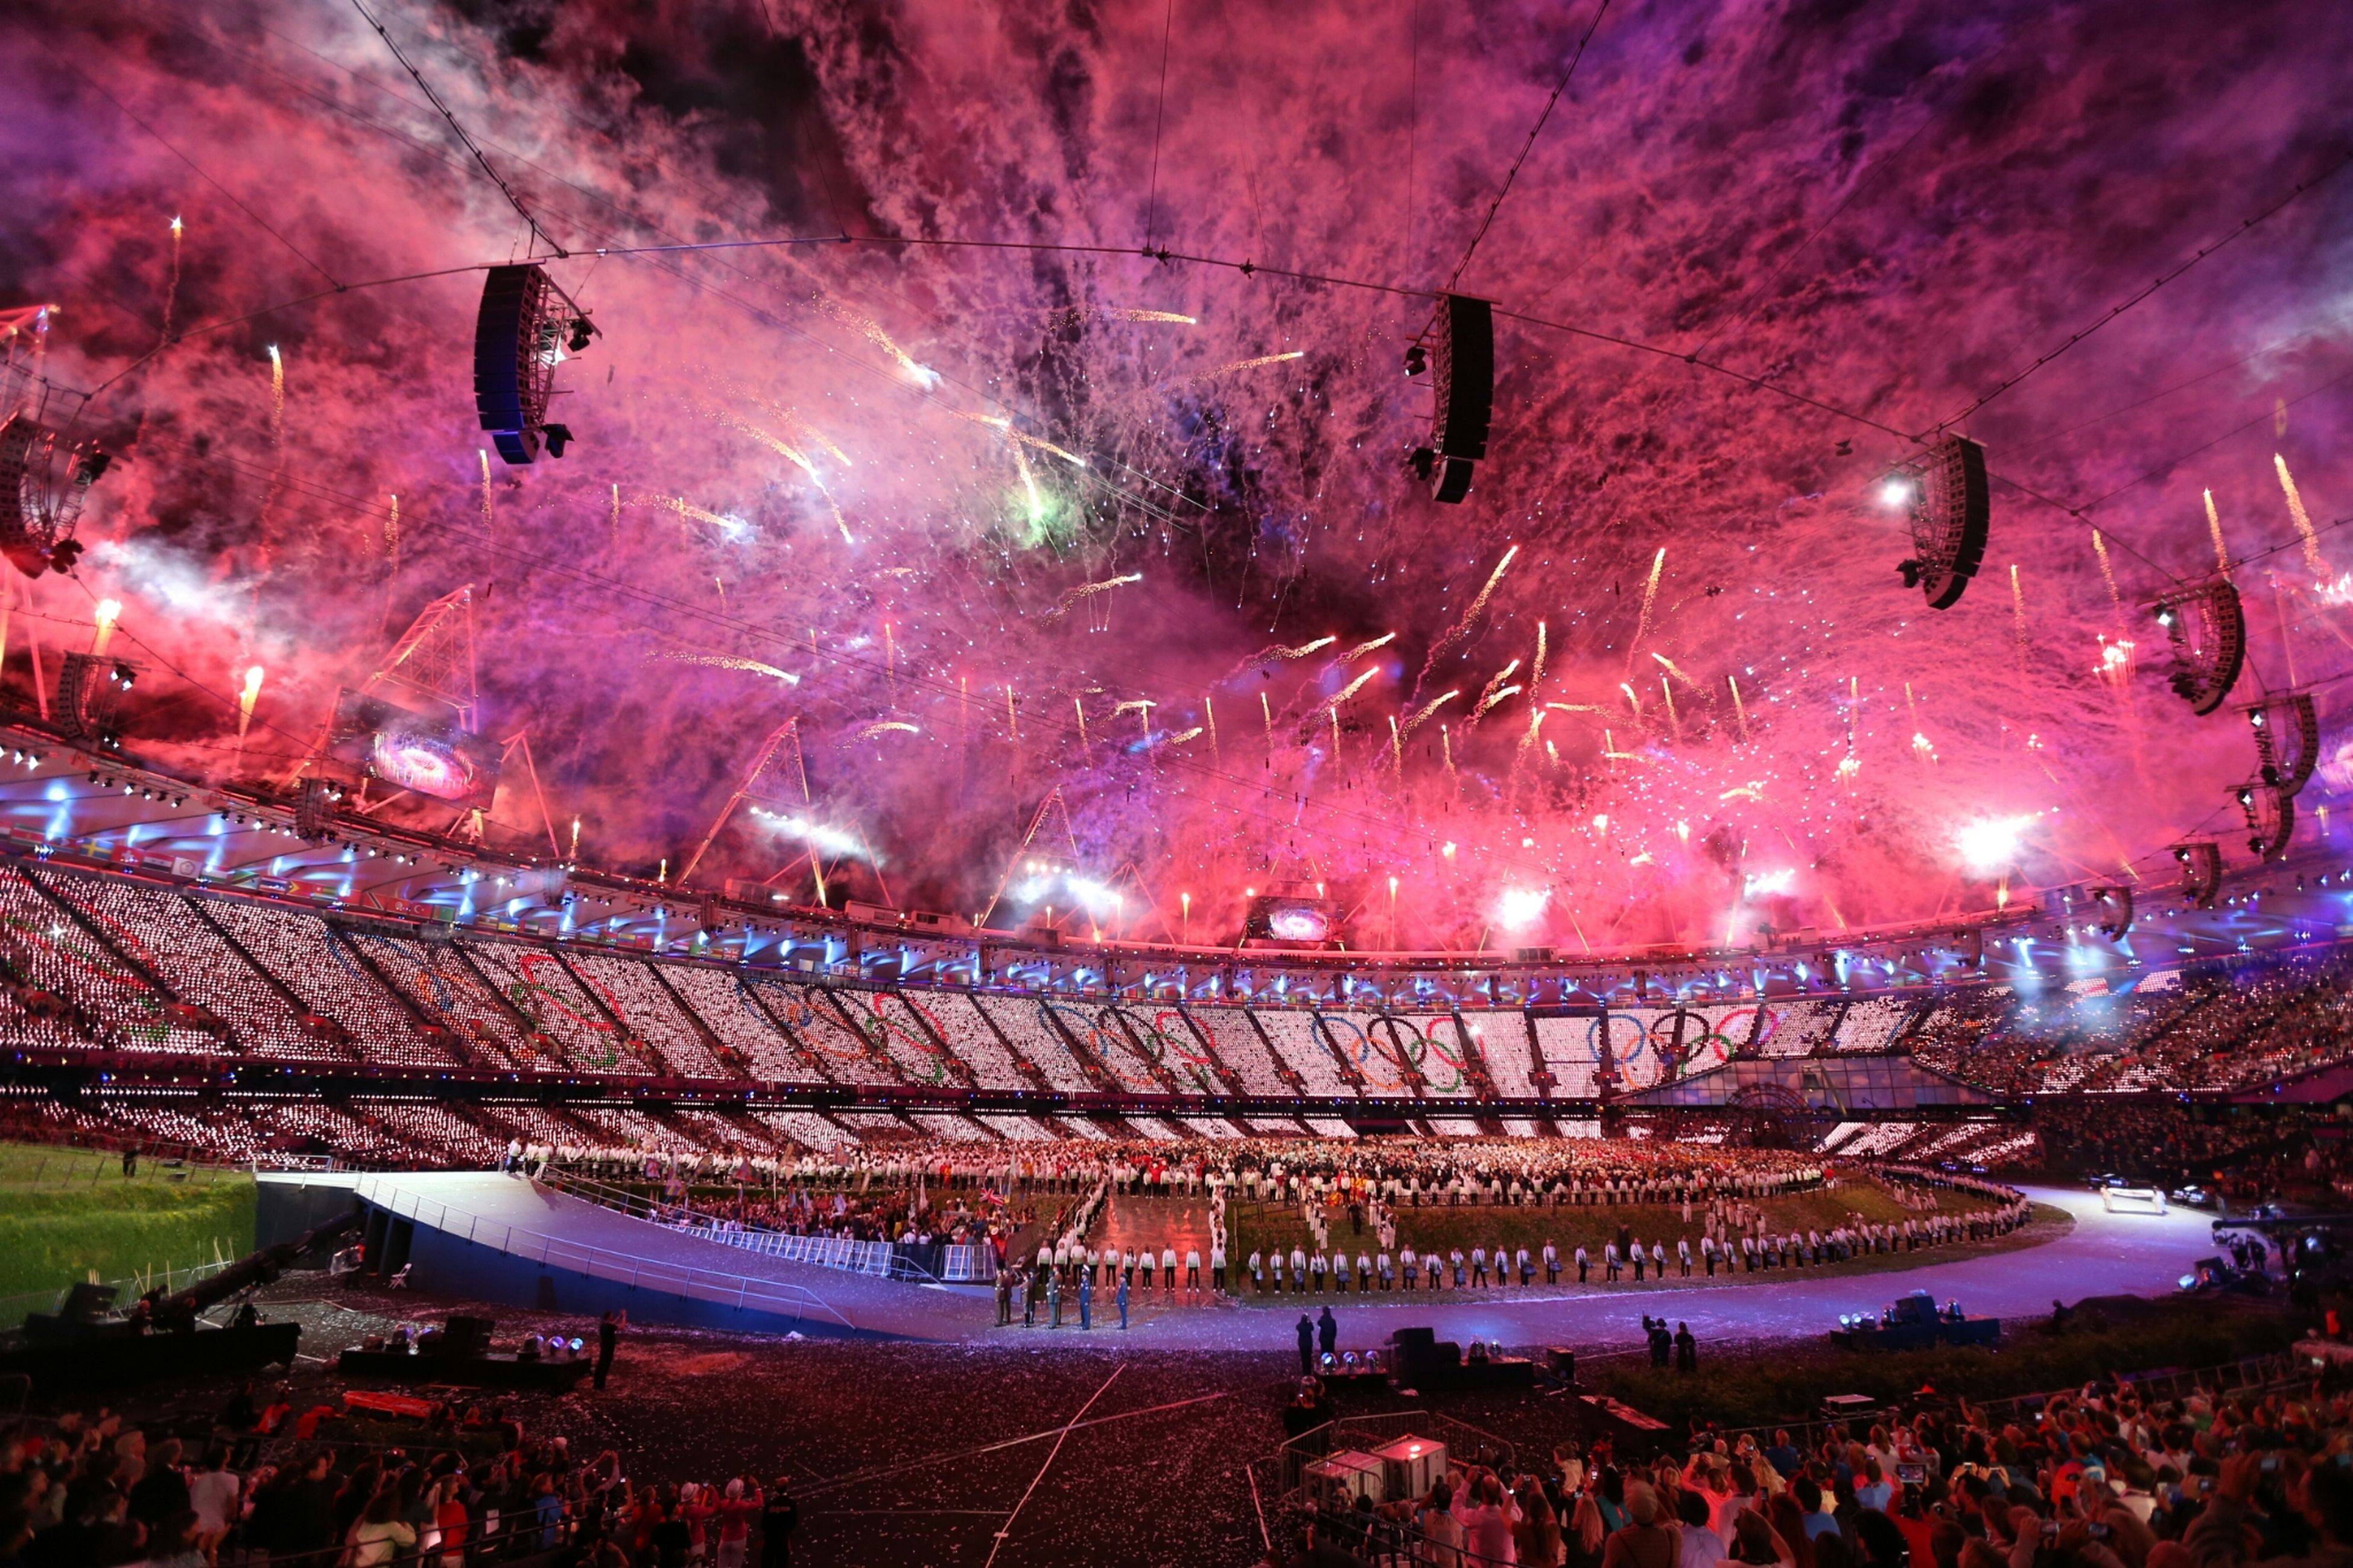 large group of people, lifestyles, leisure activity, enjoyment, men, illuminated, arts culture and entertainment, person, crowd, night, fun, water, event, enjoying, celebration, mixed age range, fountain, sky, excitement